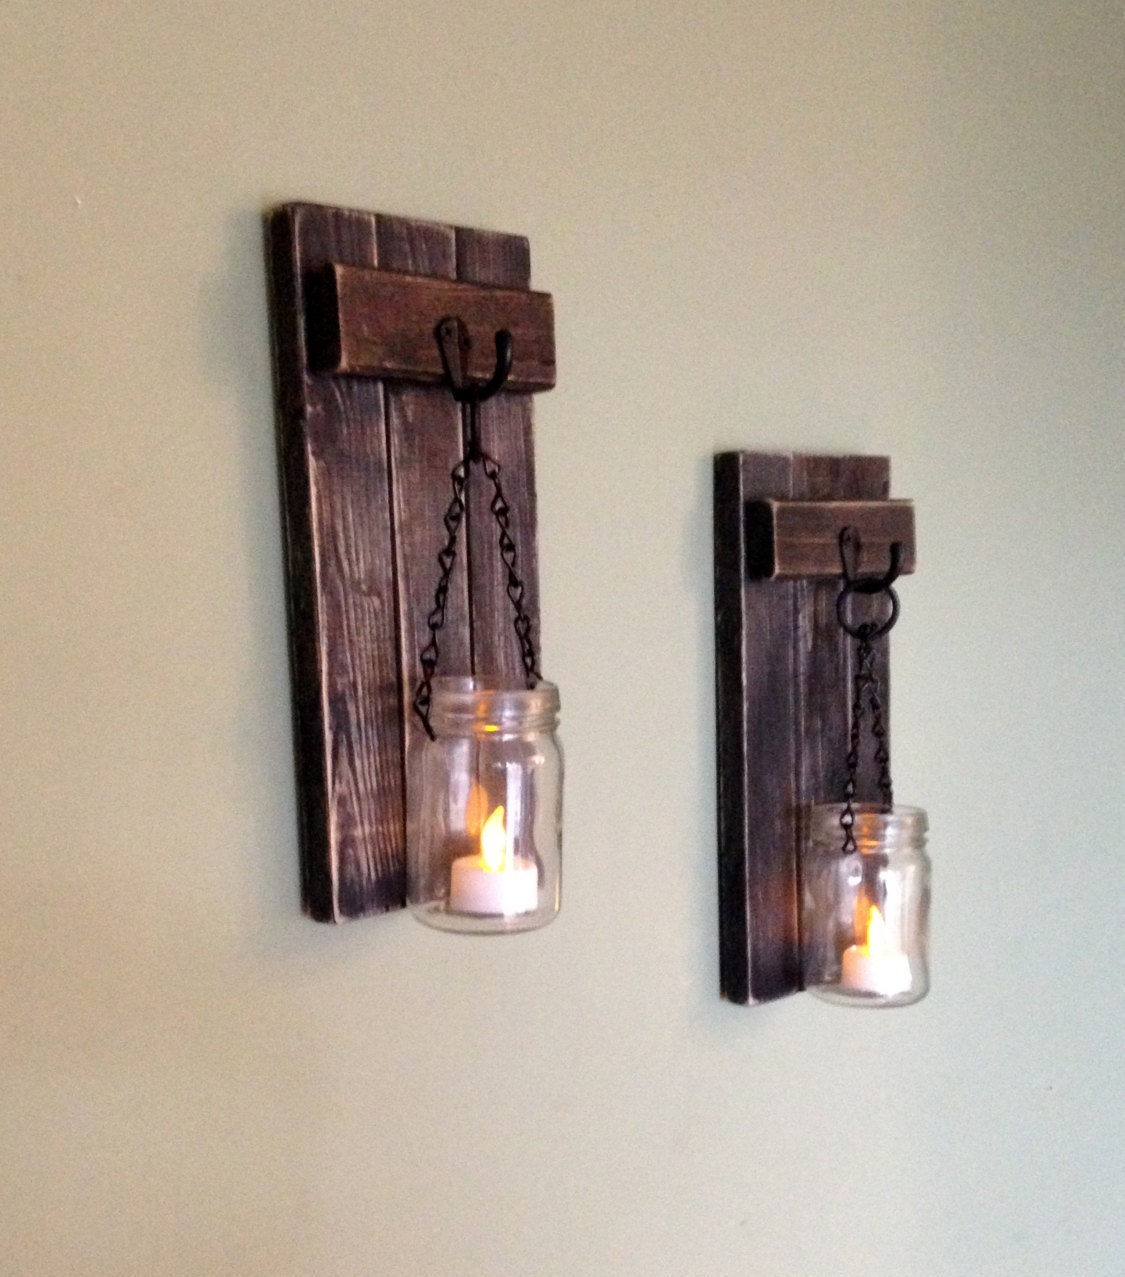 Wall Candle Sconces Wood : Rustic Wall Decor Wall Sconce Wooden Sconce Wooden Candle